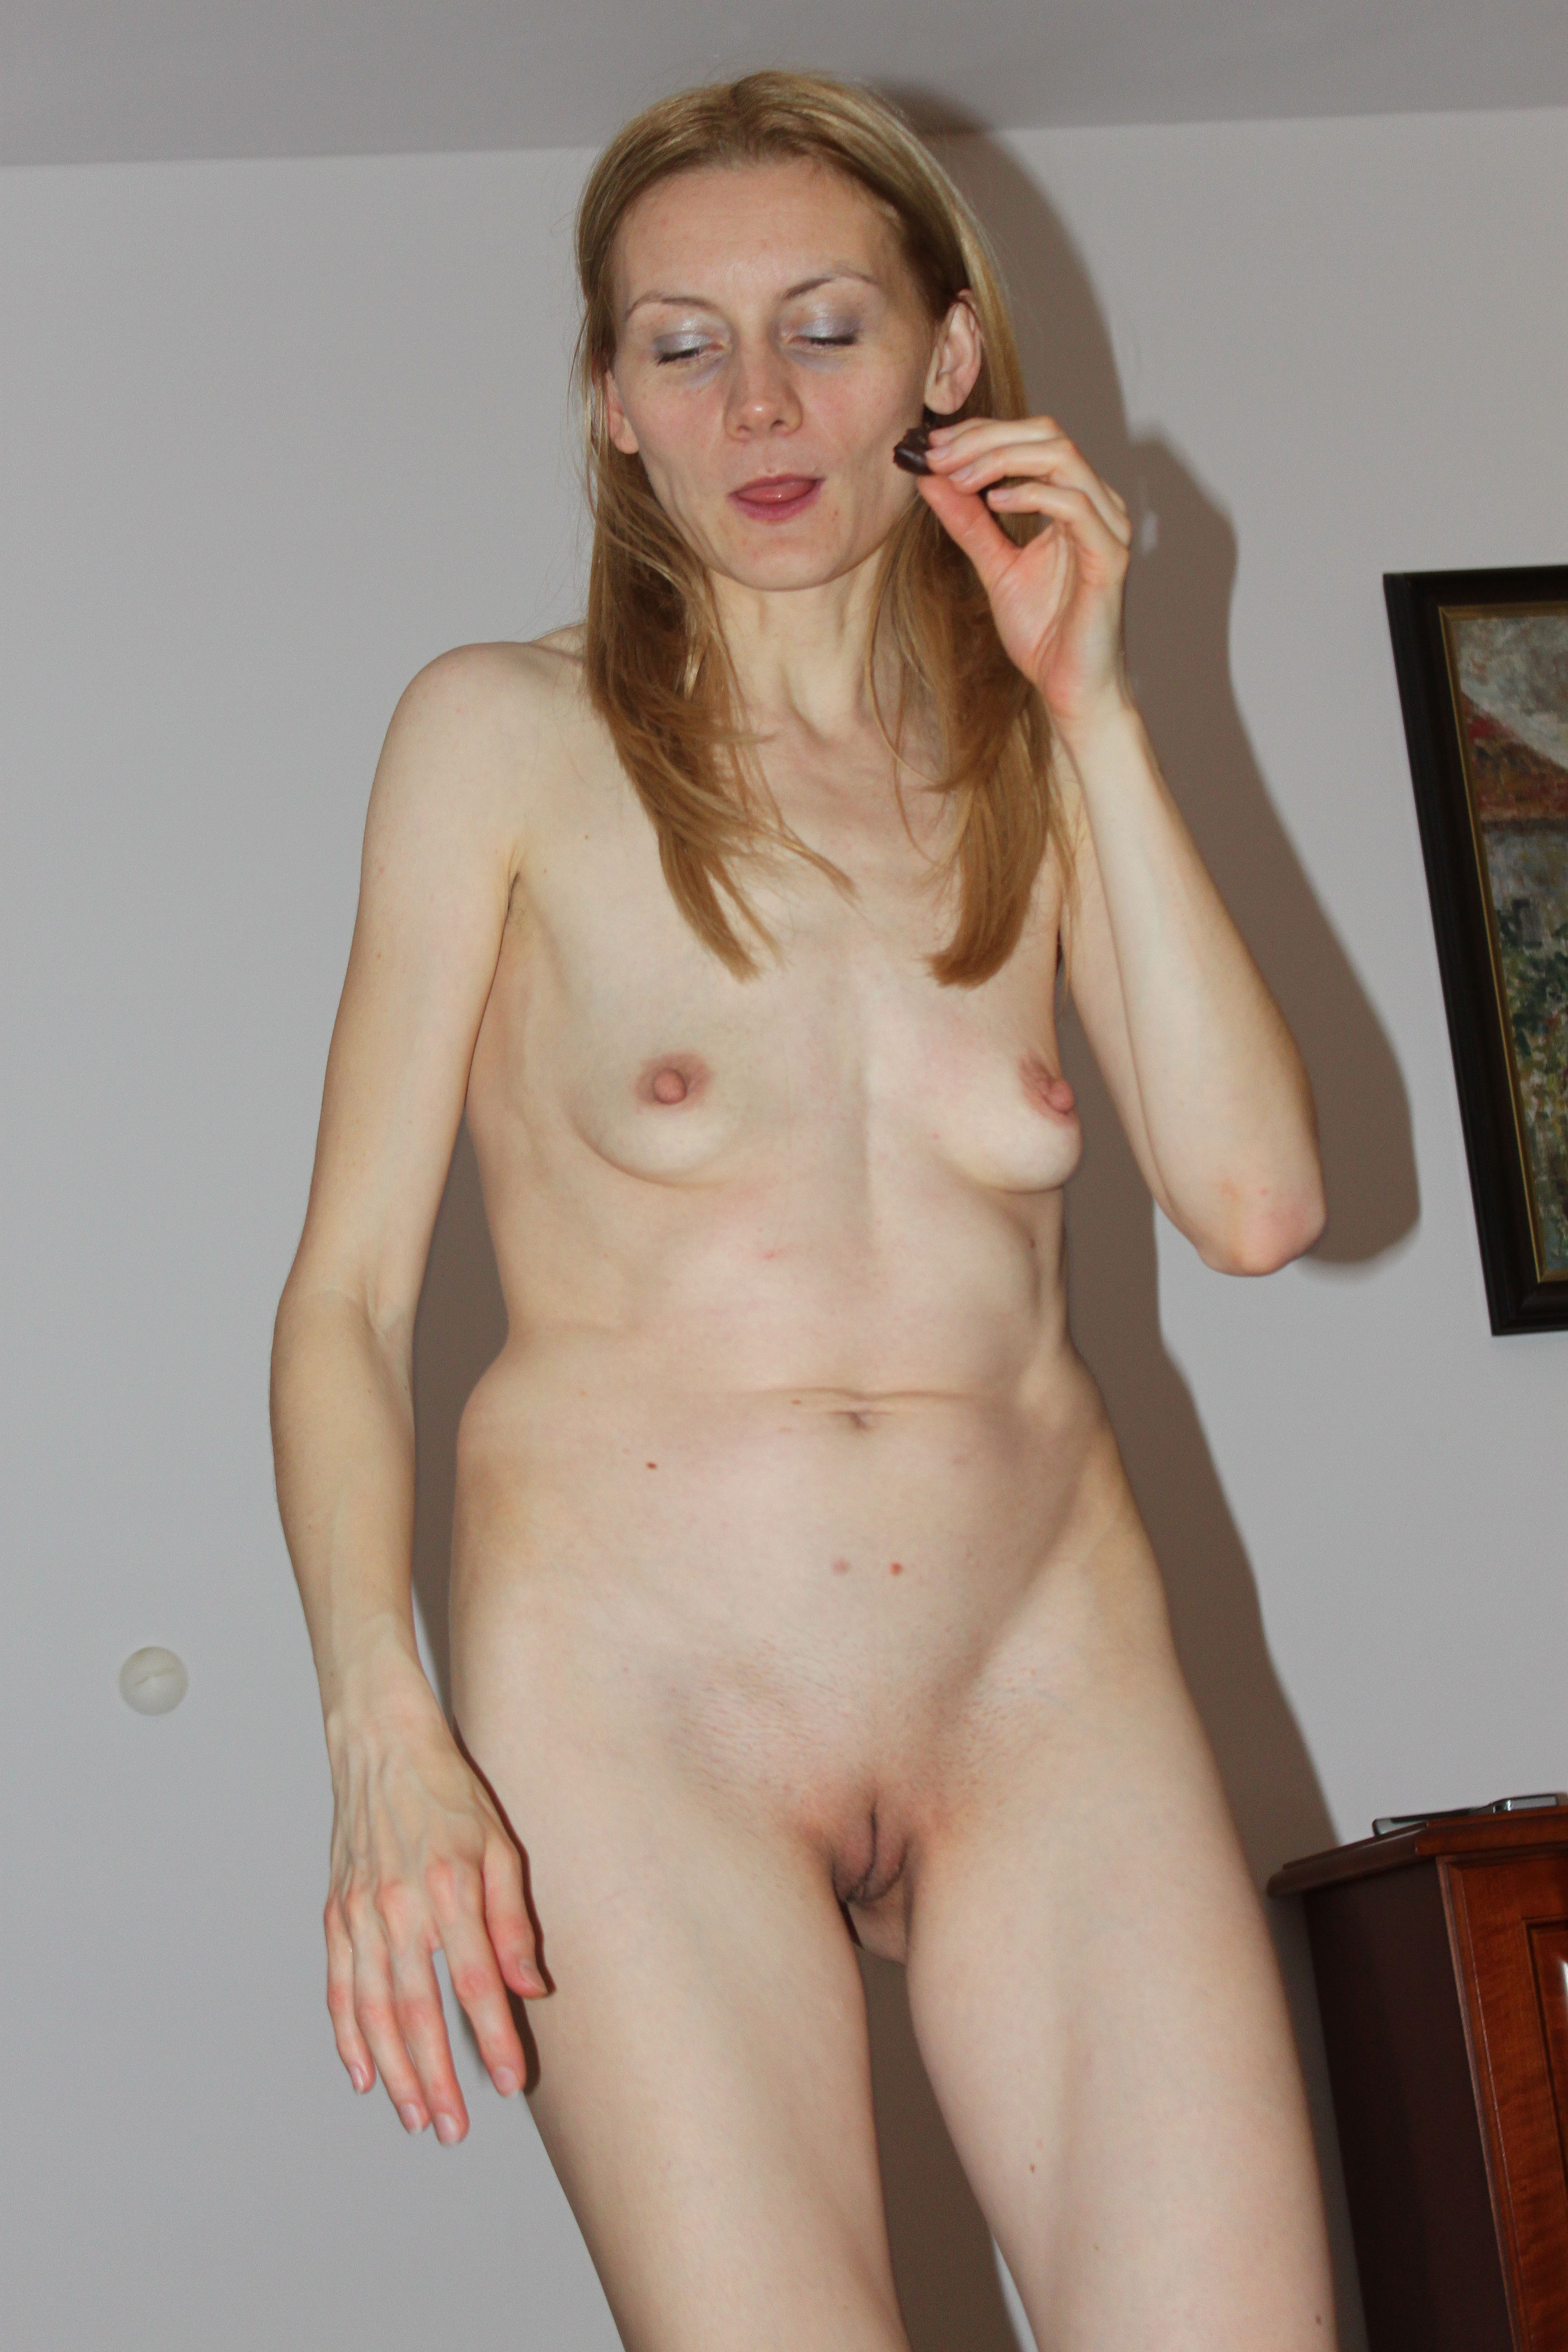 Waching wife give oral sex